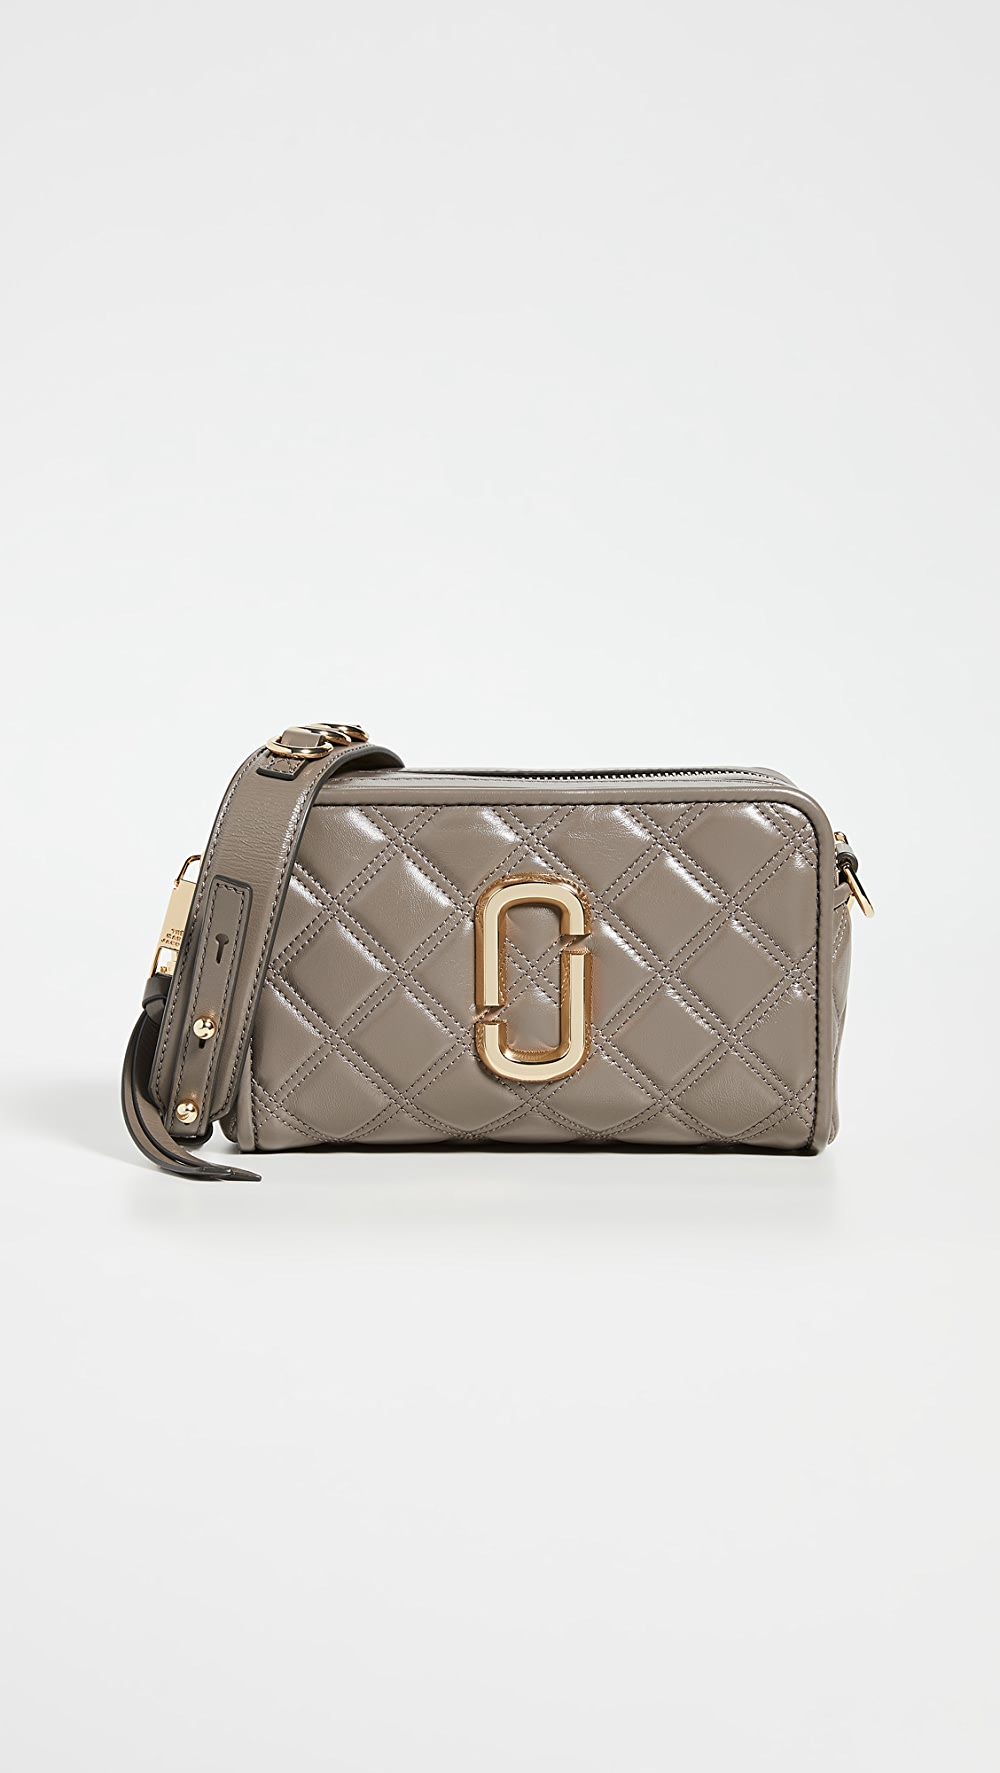 2019 Latest Design The Marc Jacobs - The Softshot 21 Bag Low Price